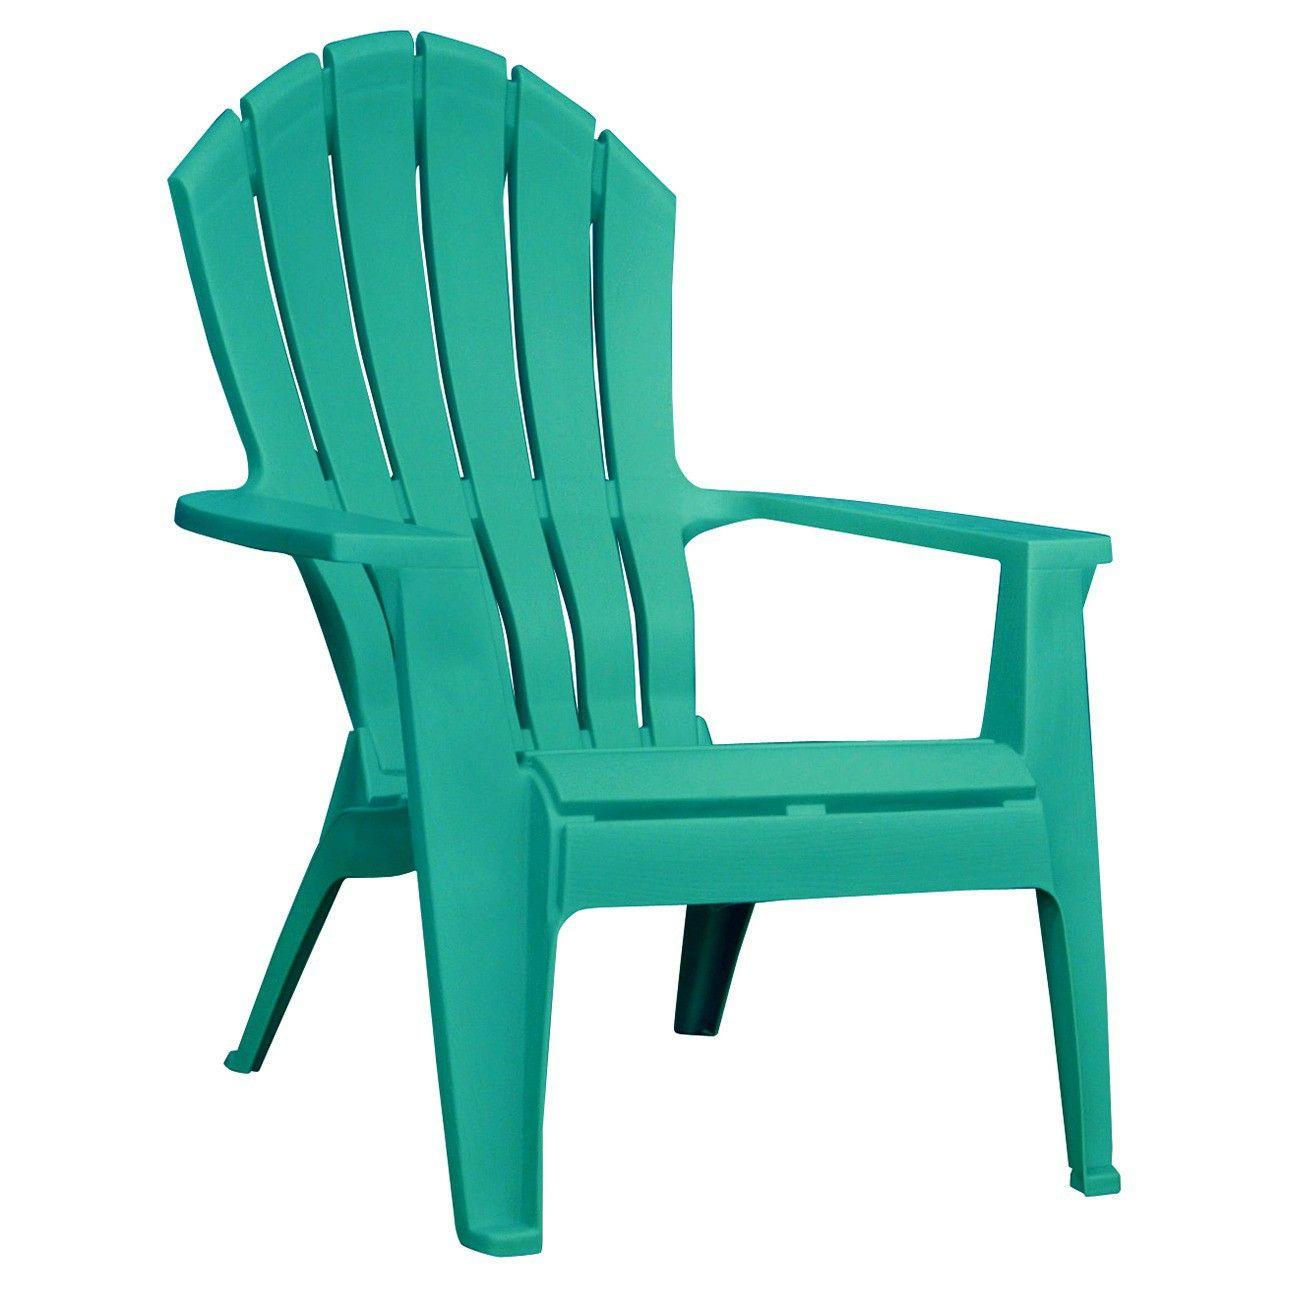 Teal Adirondack Chairs Resin Adirondack Chair Turquoise Target Apartment